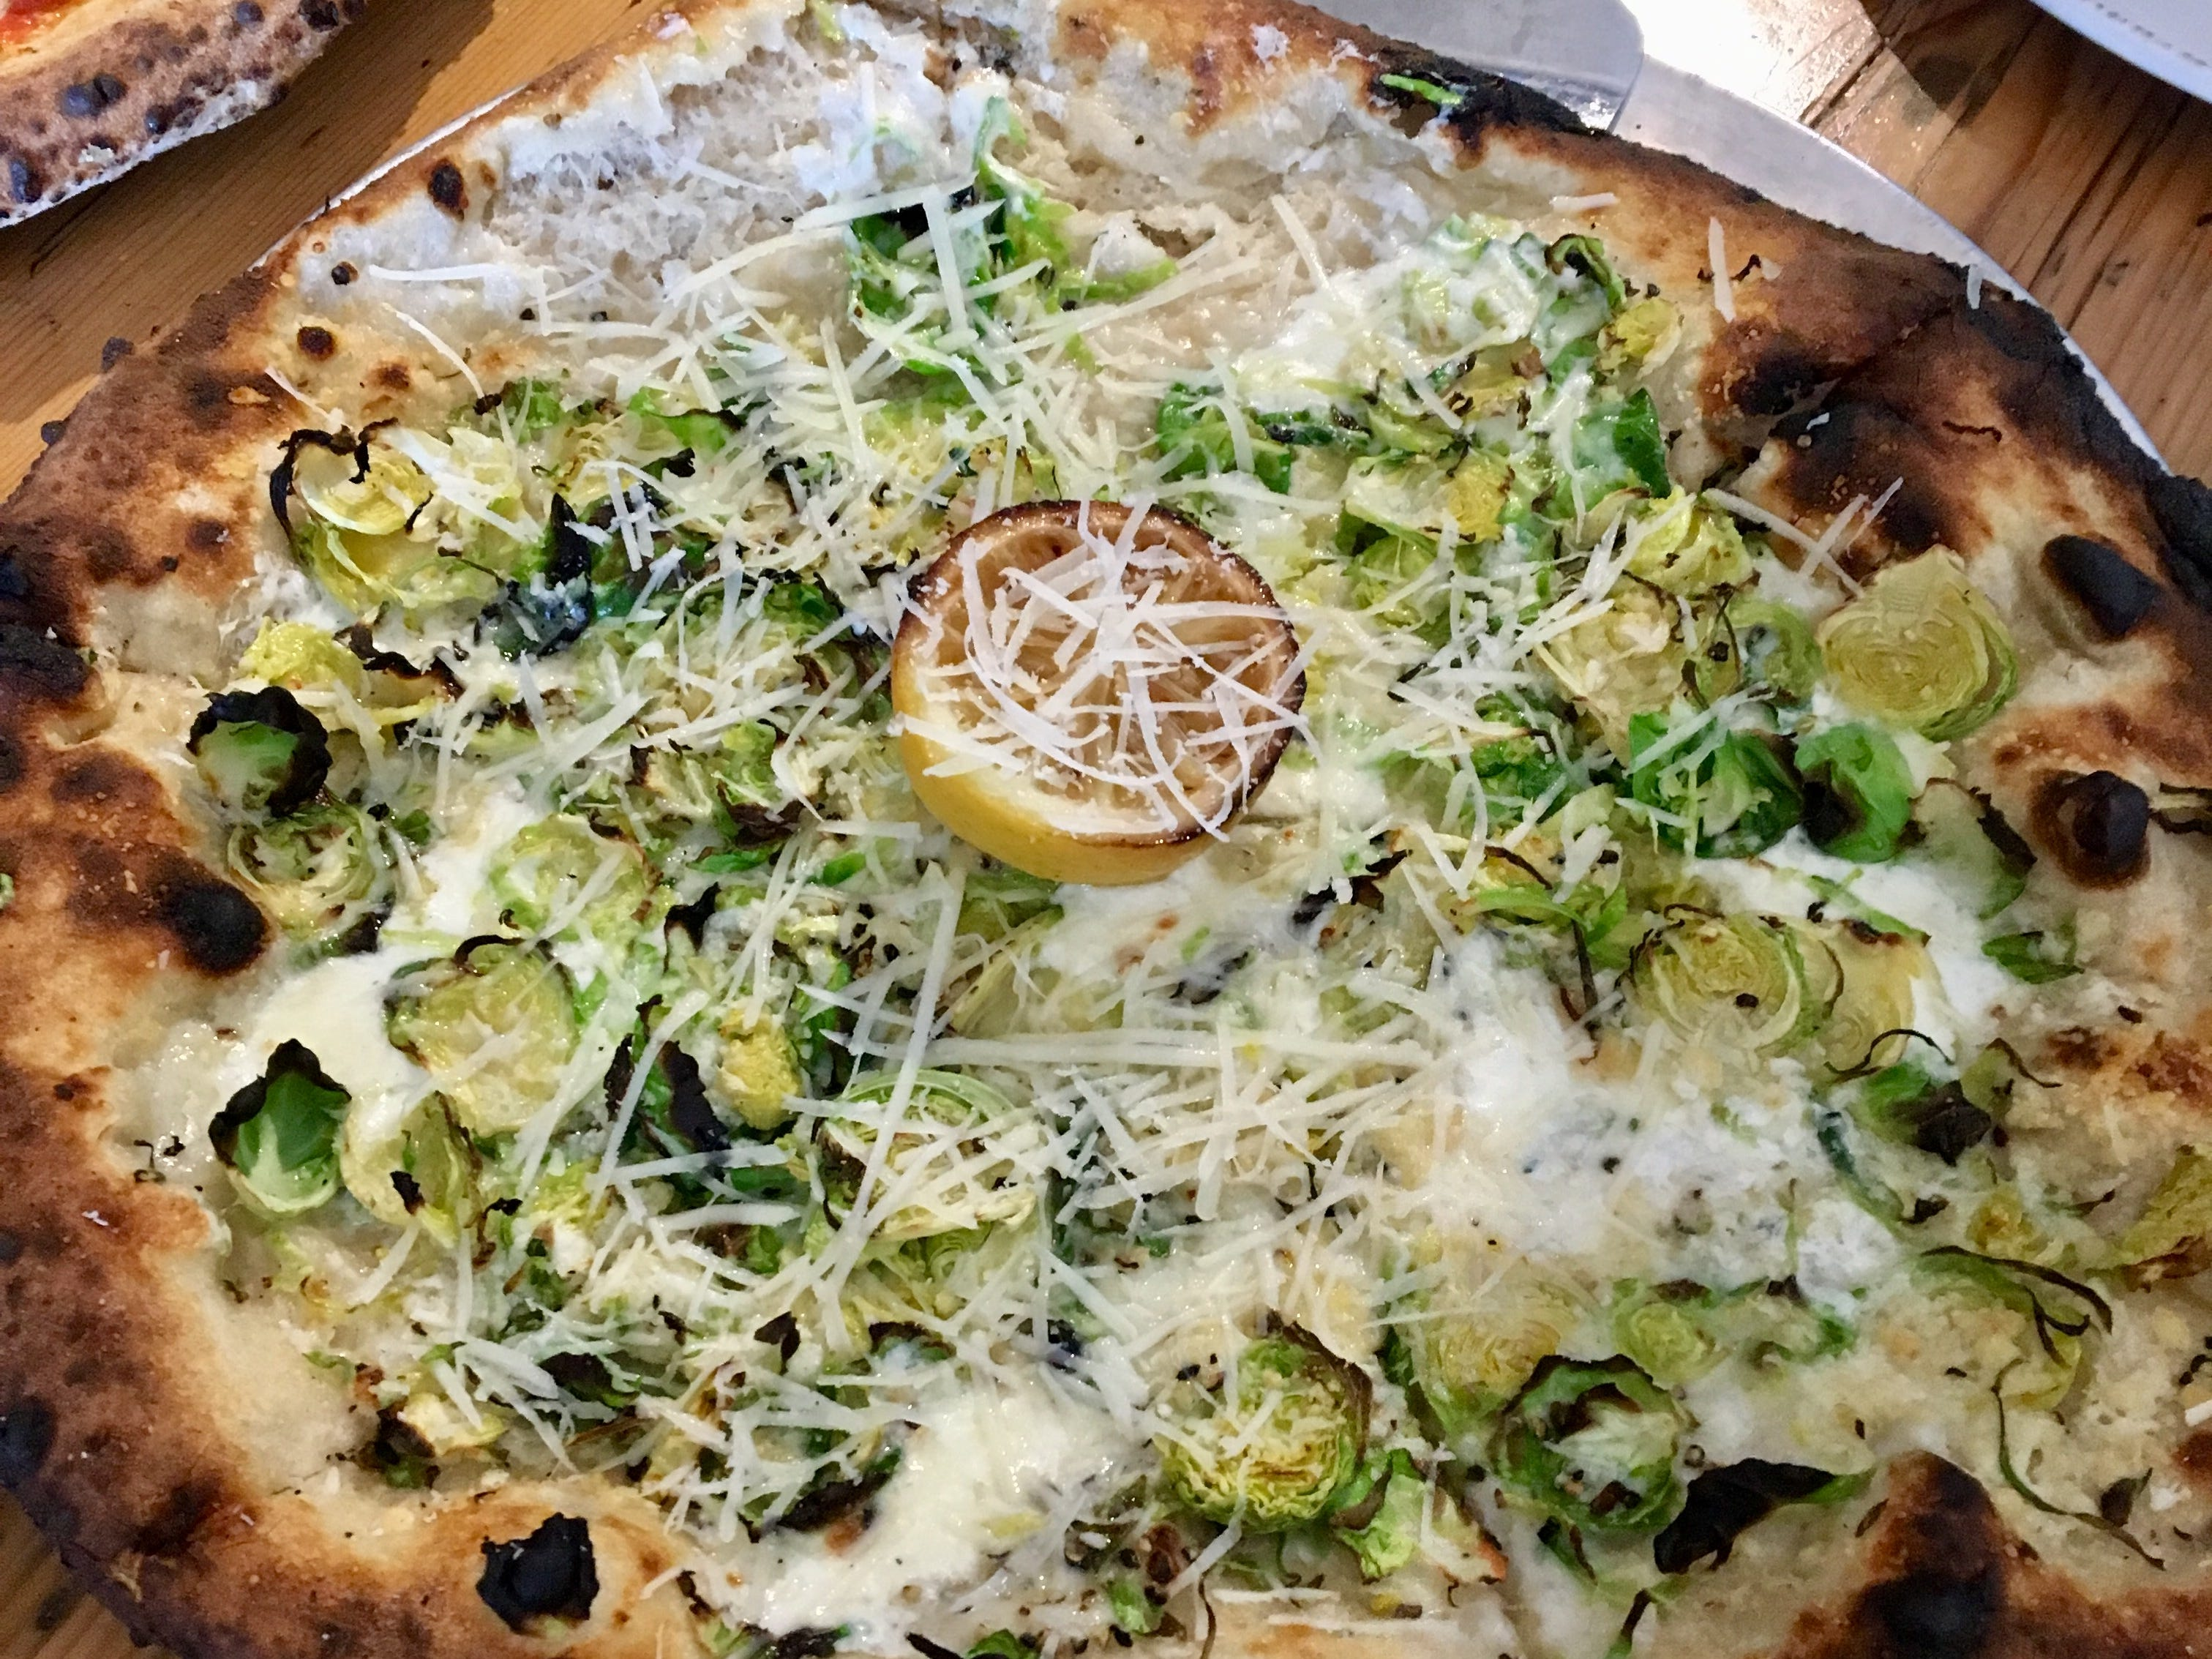 Brussels sprouts pizza special at Wood Stack Pizza + Kitchen in Pine Brook.